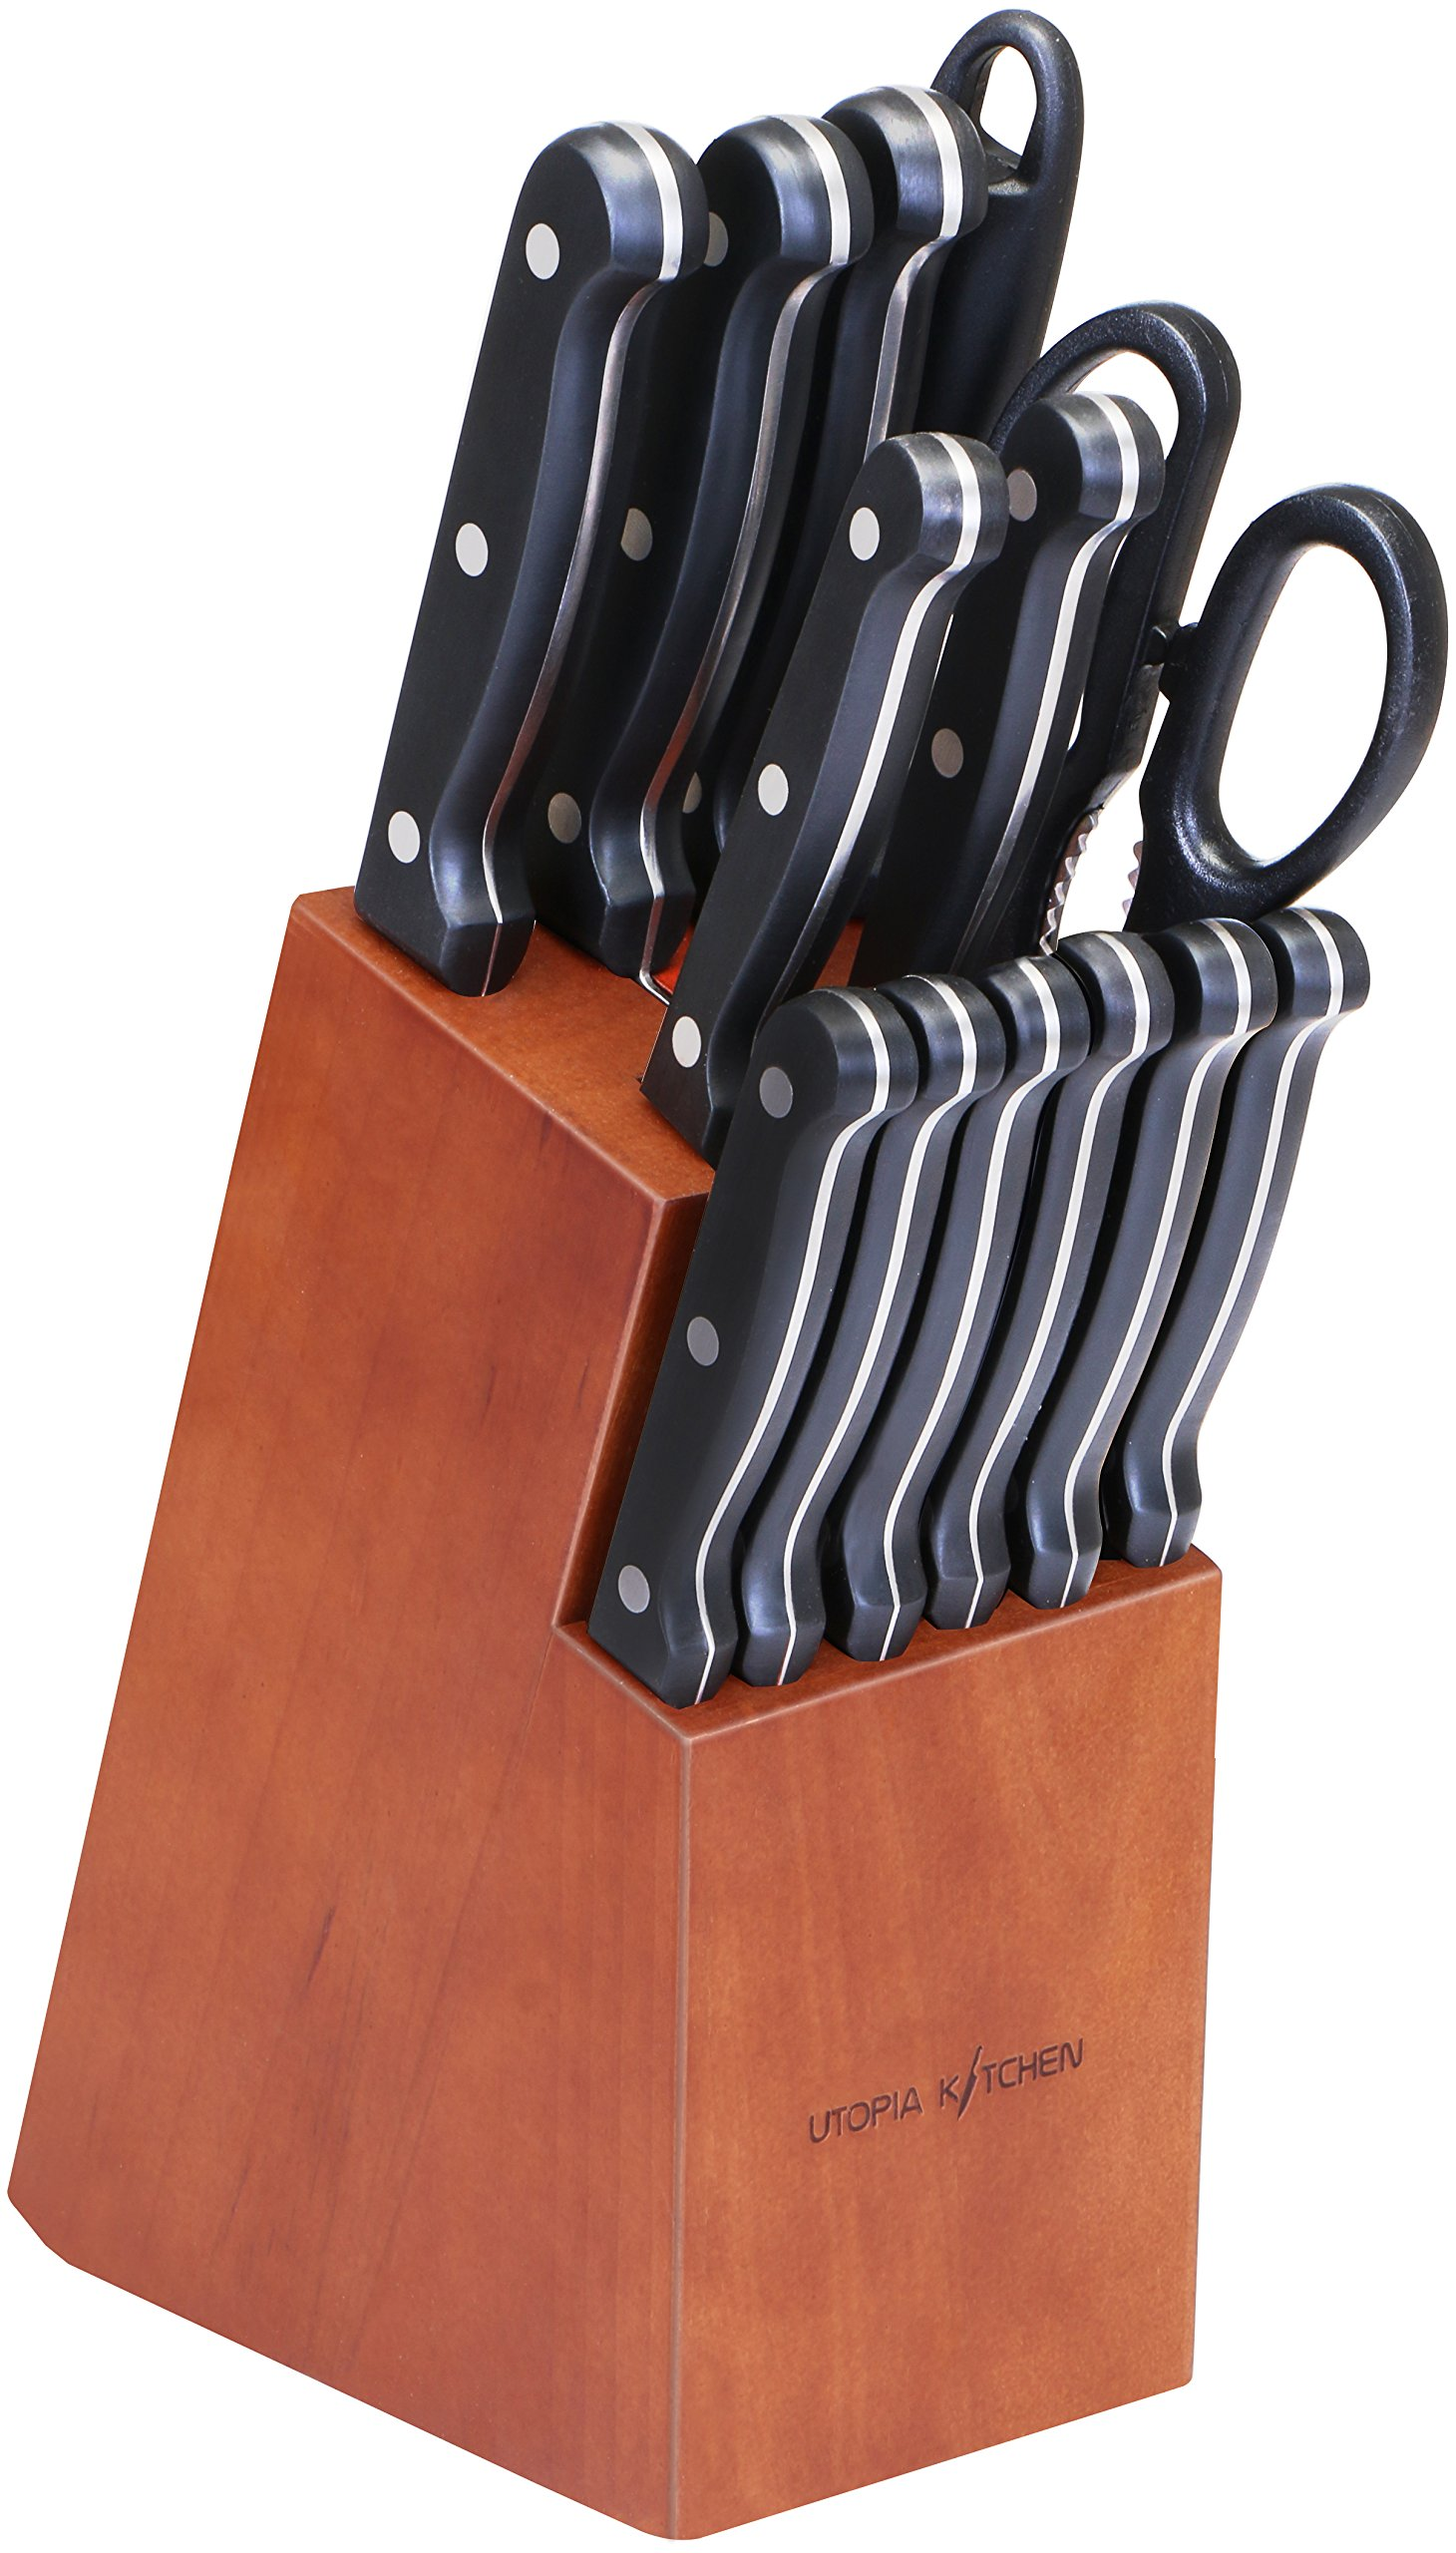 Utopia Kitchen Knife Set - 14 Piece Knife Block Set with Walnut Stained Block